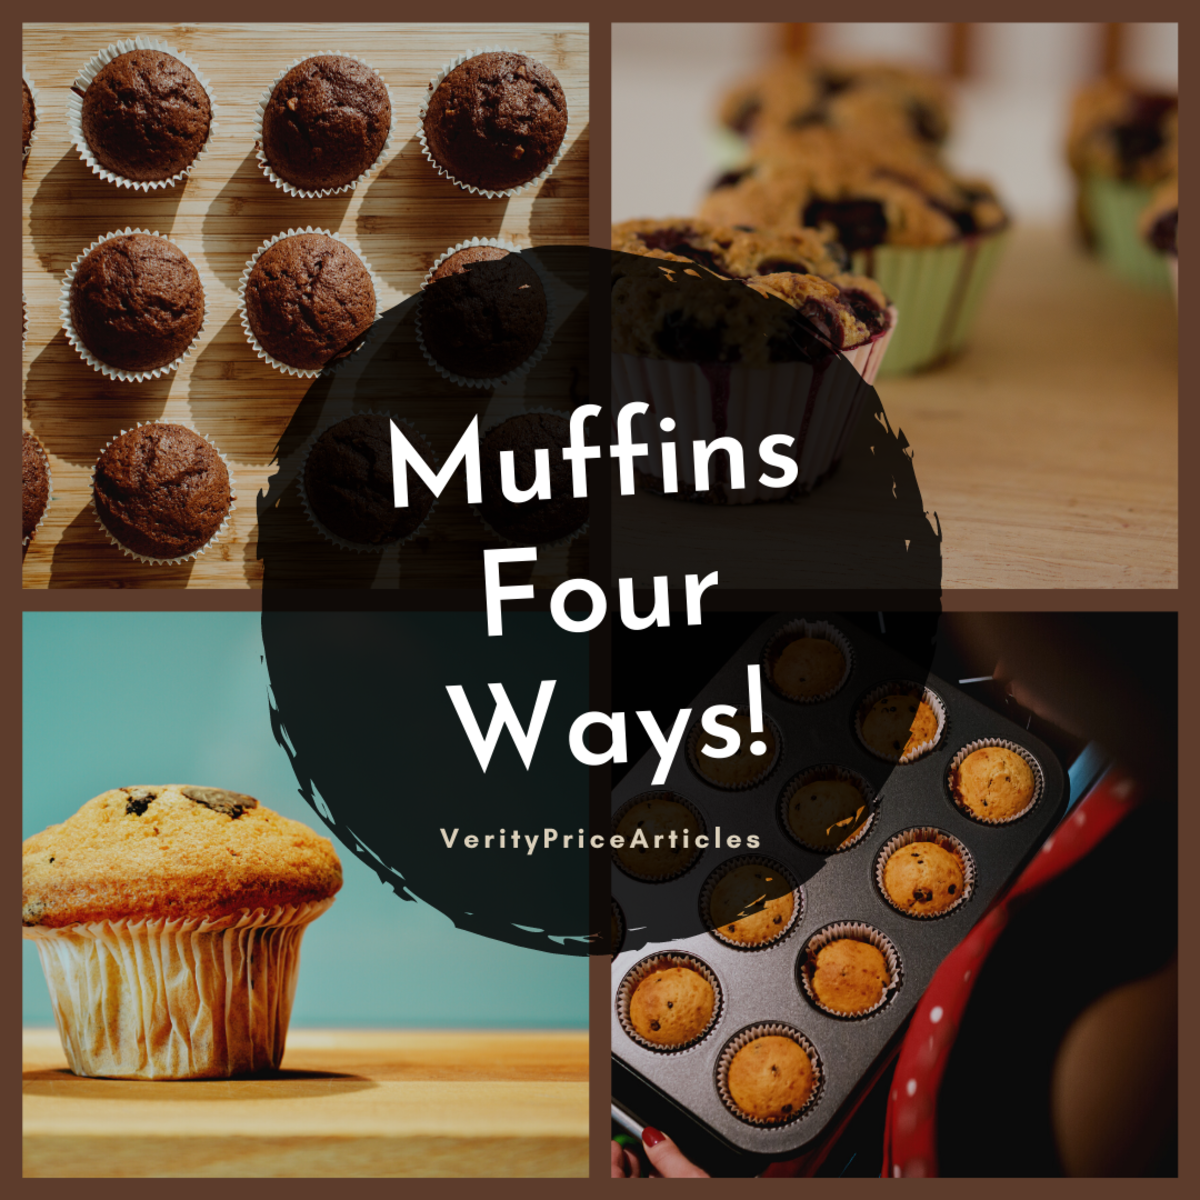 Learn how to make four different delicious muffins!